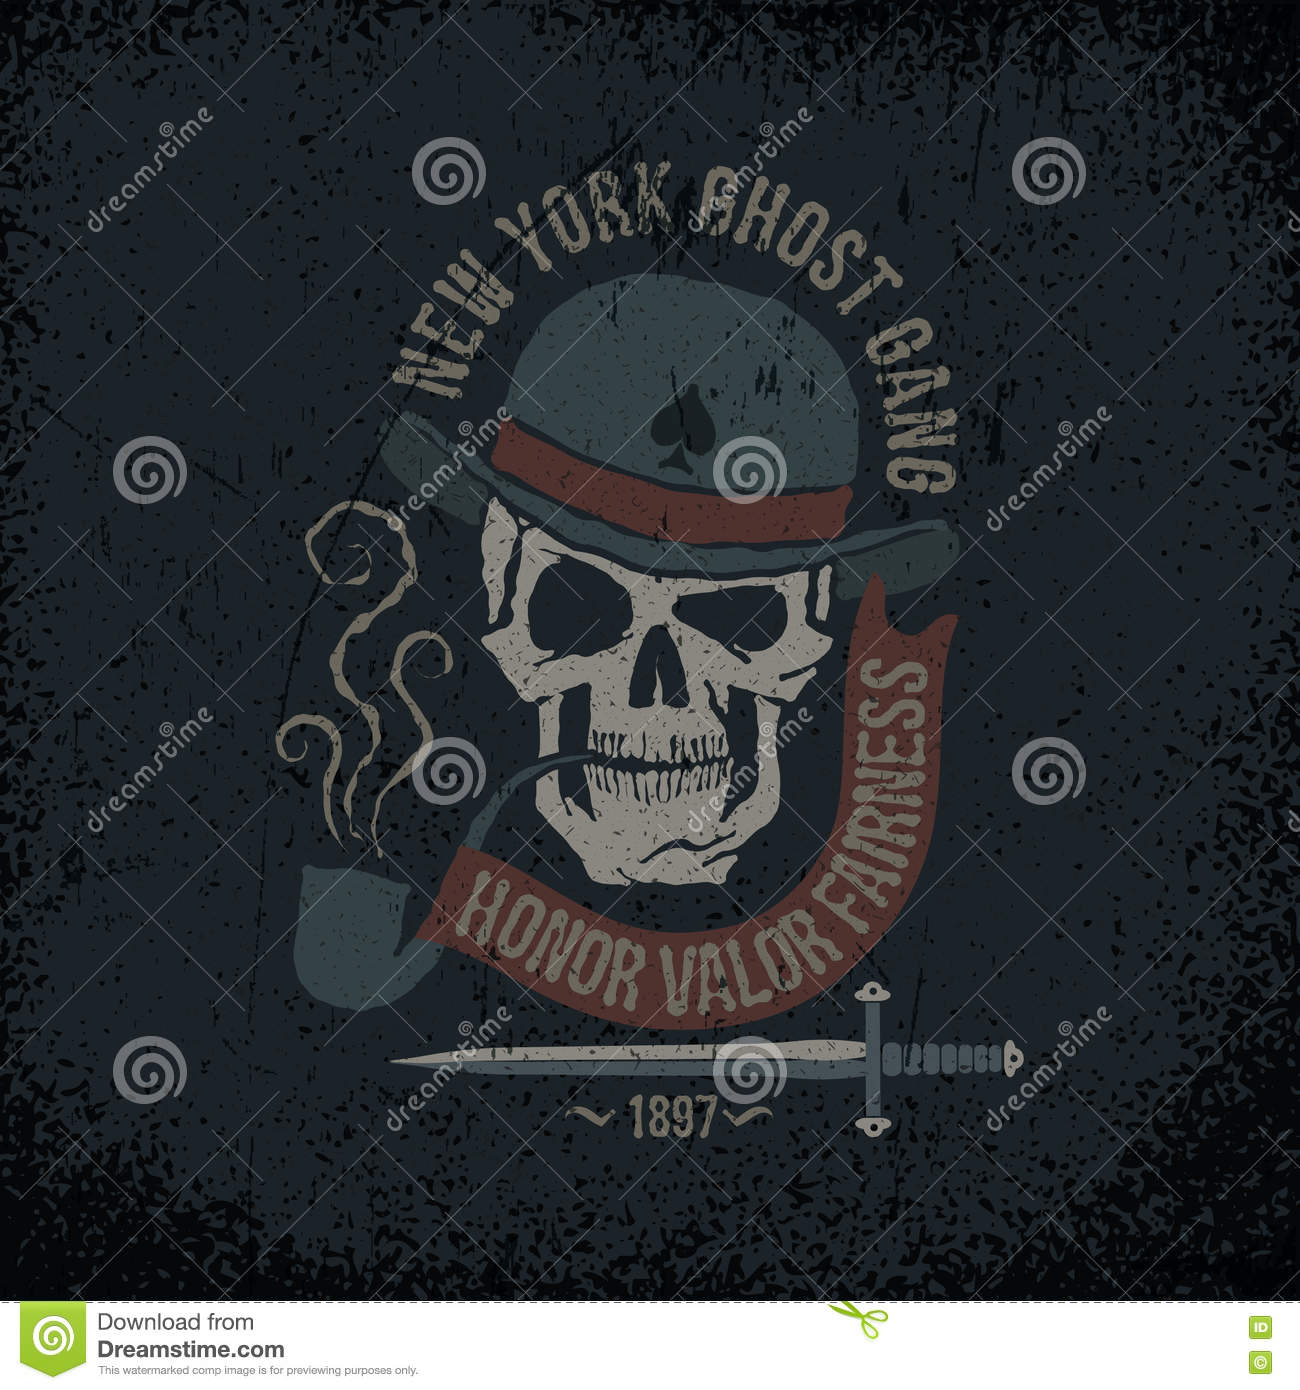 ba544753 Gangster grunge logo with a skull in a bowler hat, with a pipe, dagger and  banner. Textures on separate layers - easily editable.